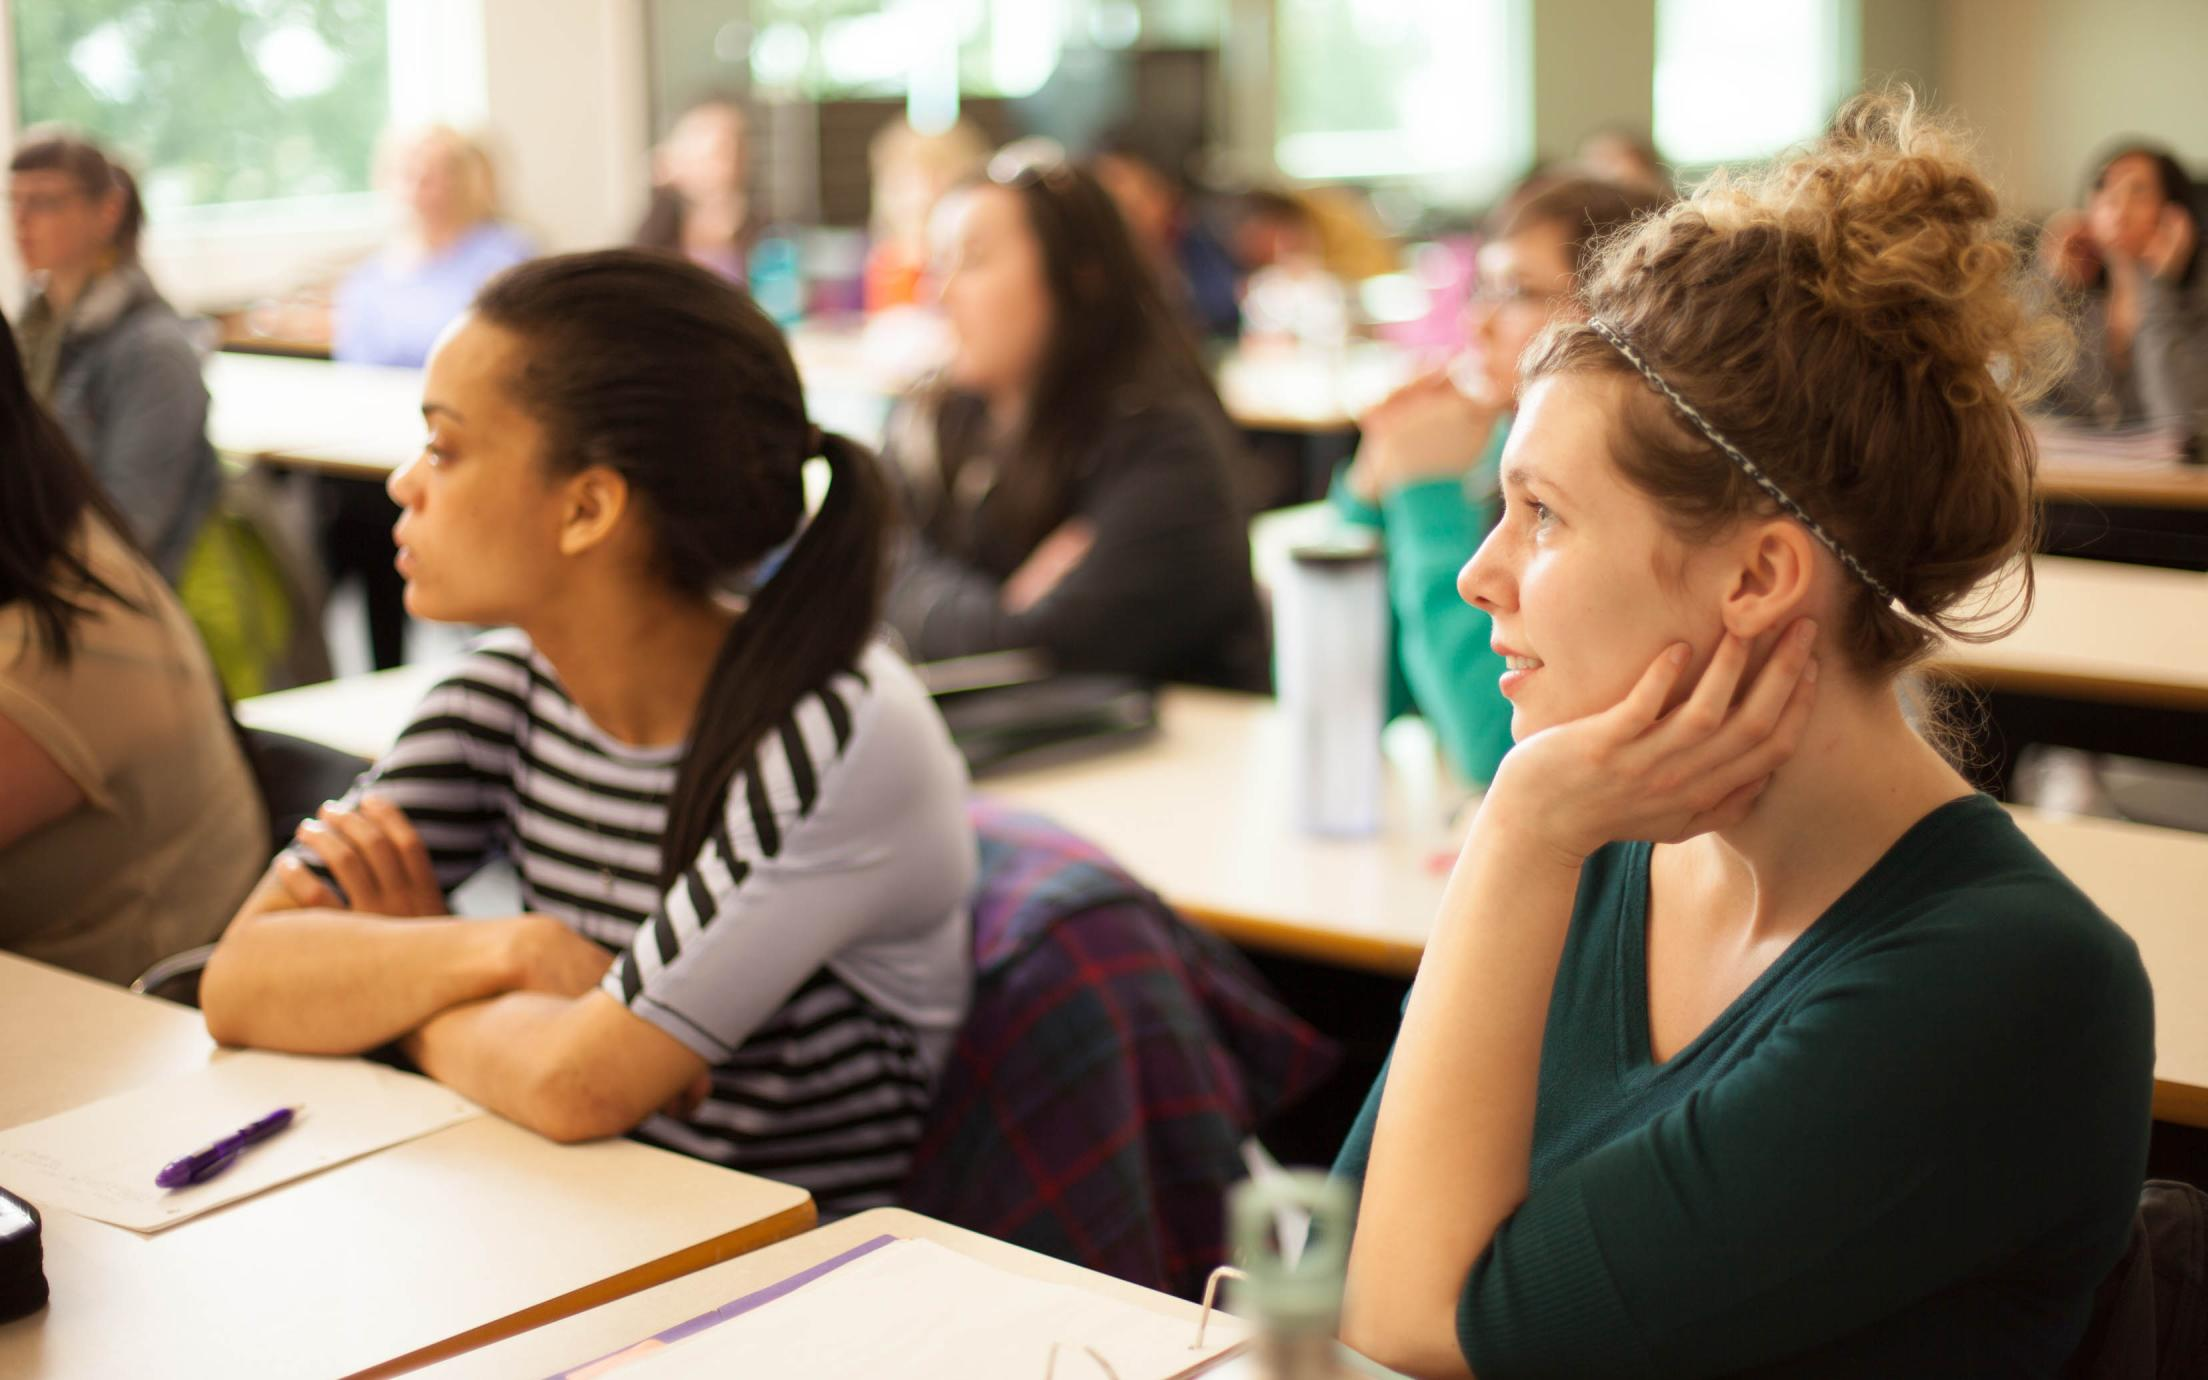 Students of the Master of  Art in Sustainable Leisure Studies Management program listening to a lecturer